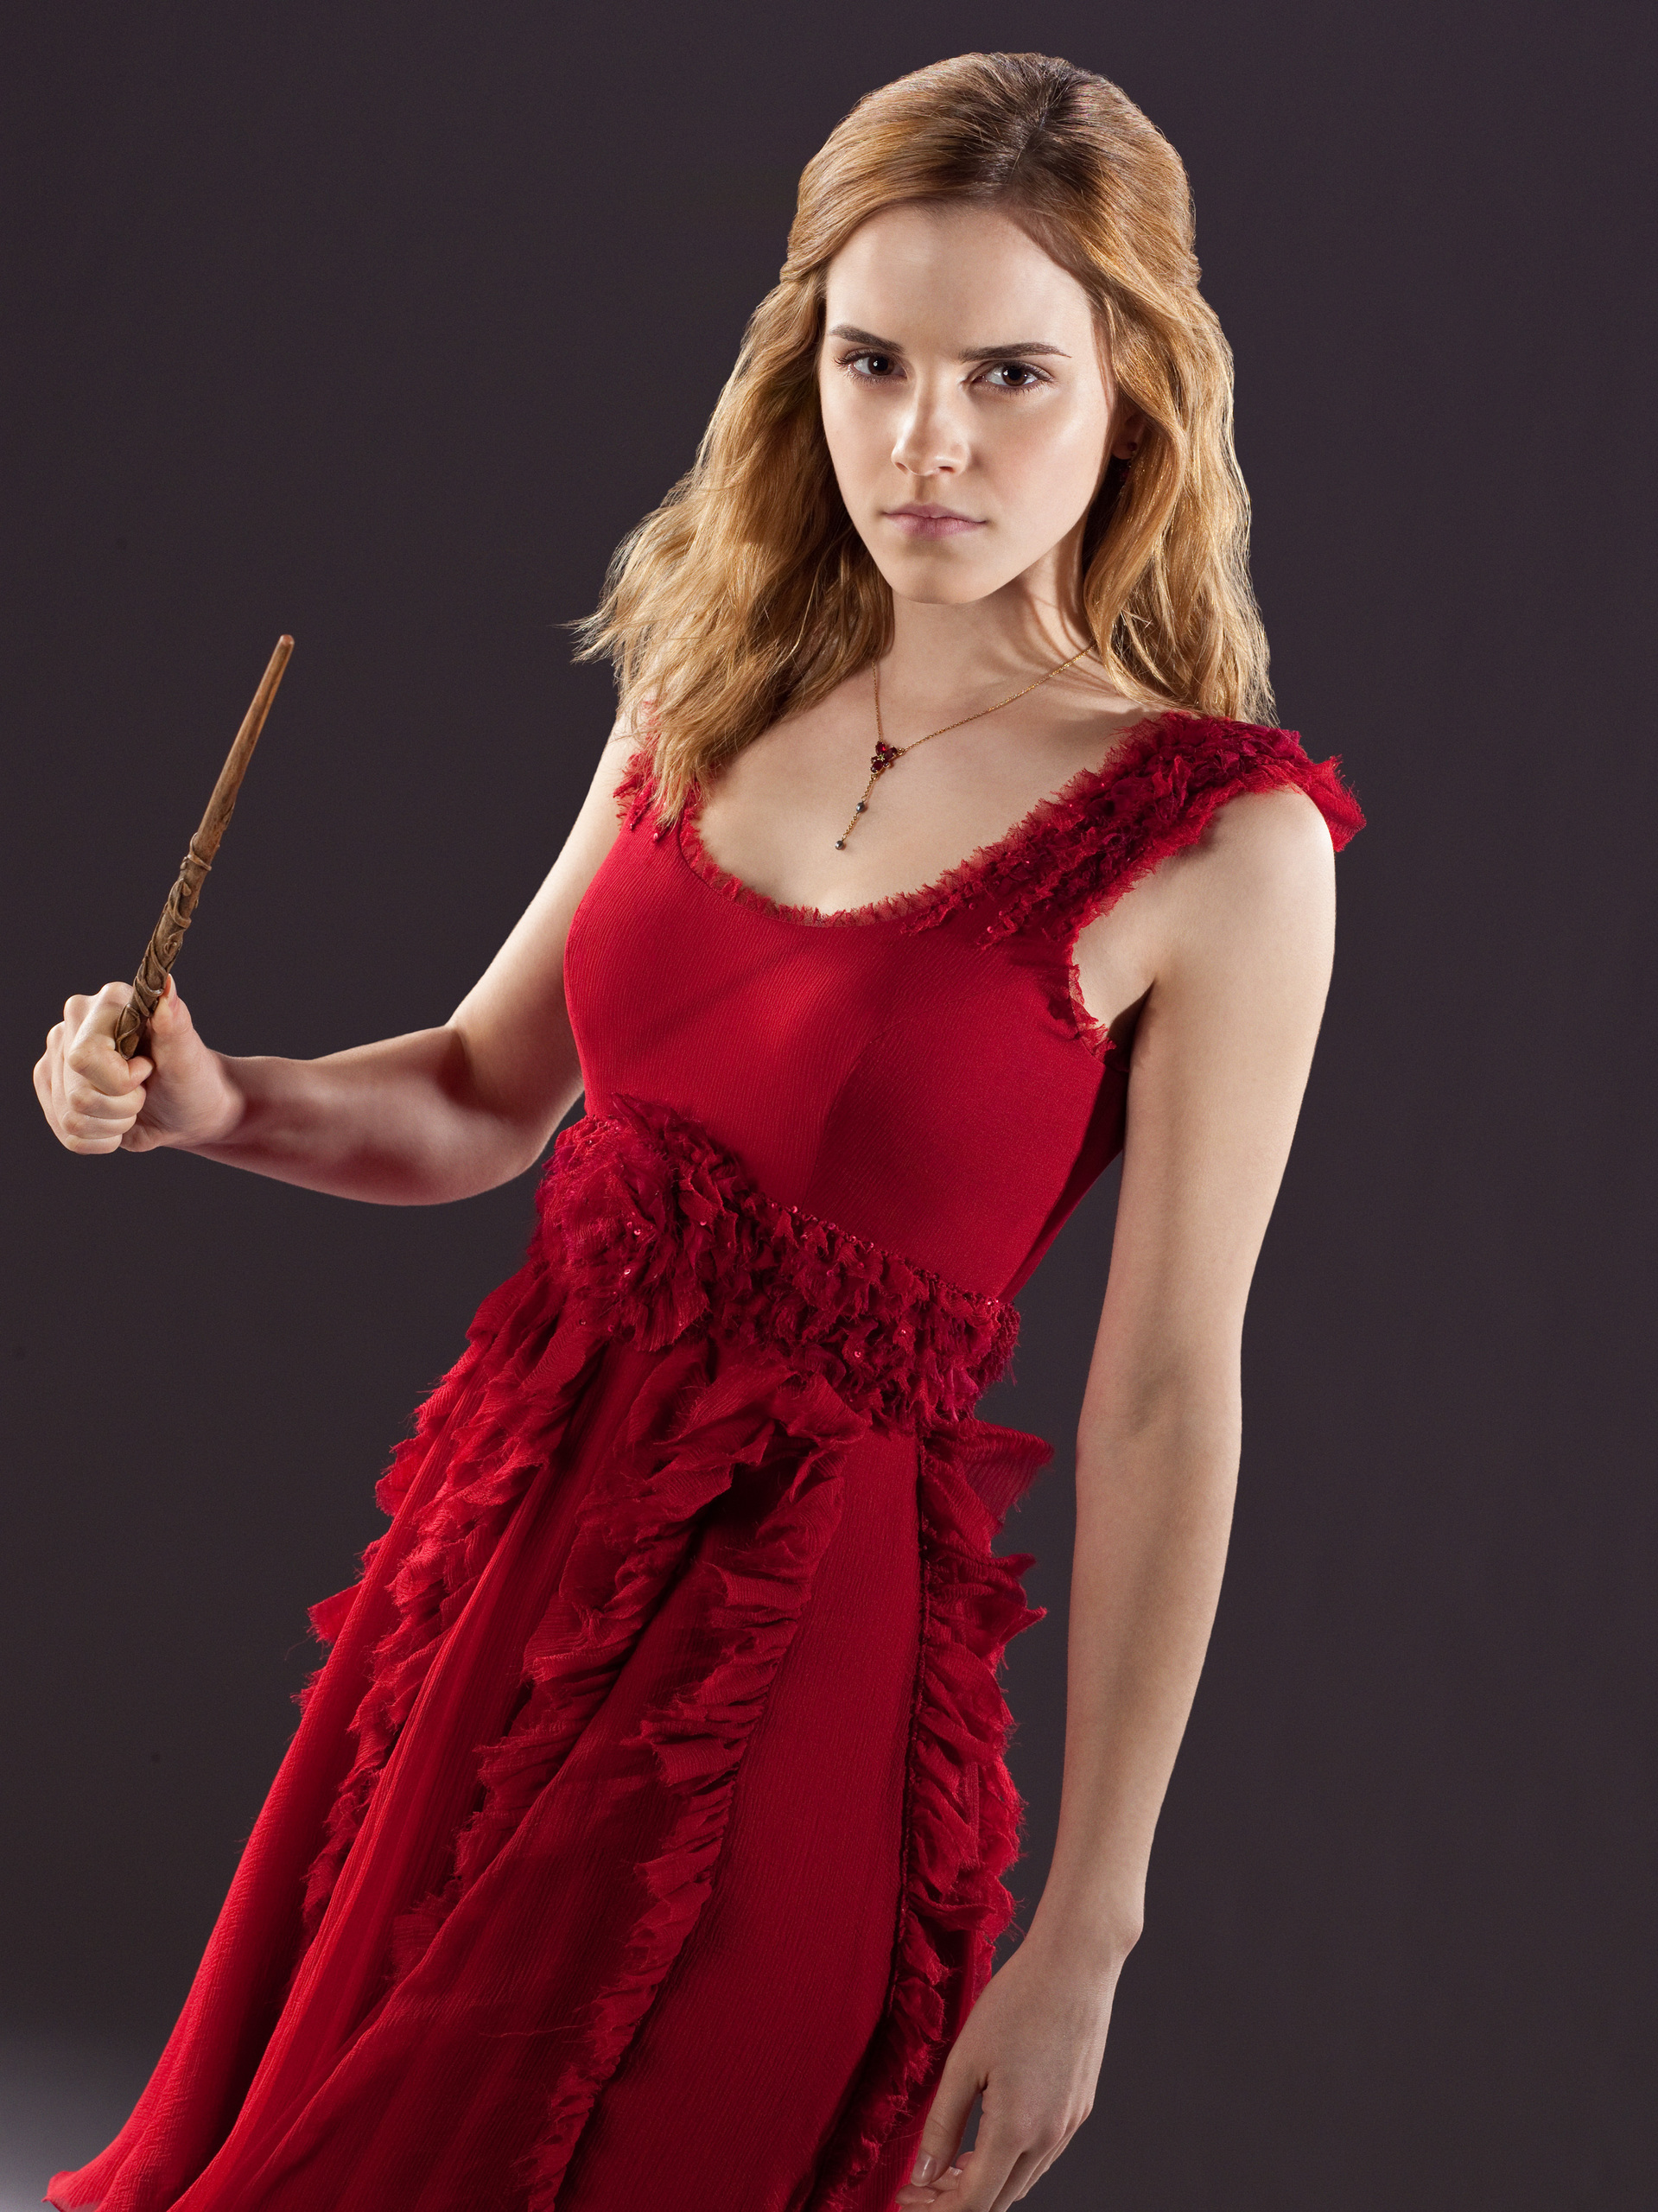 Harry Potter and the Deathly Hallows Movies images Hermione HD ...